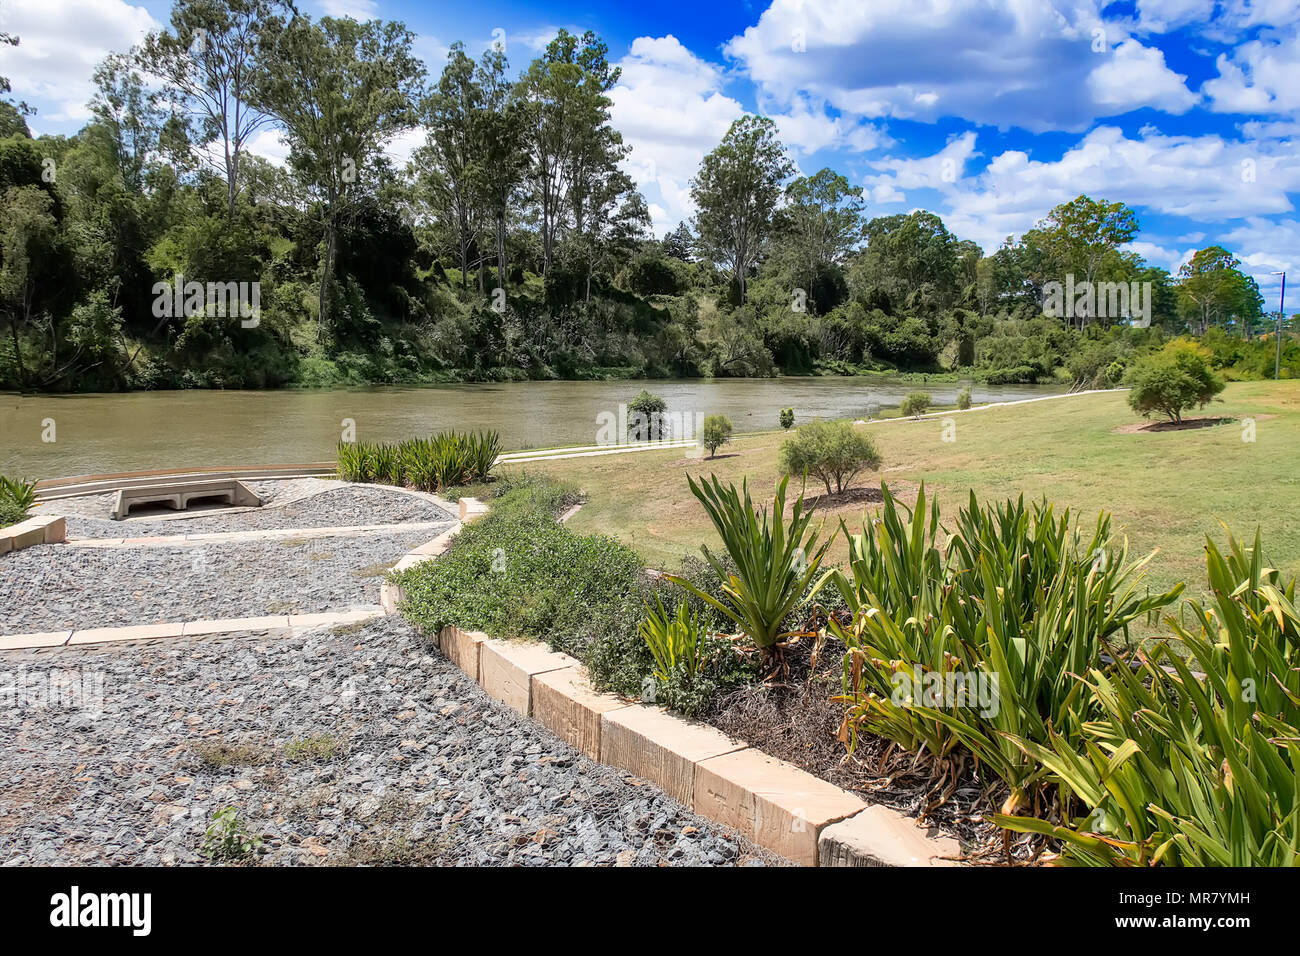 The park at Colleges Crossing is drained through the gravel and under the pathway to the river - Stock Image